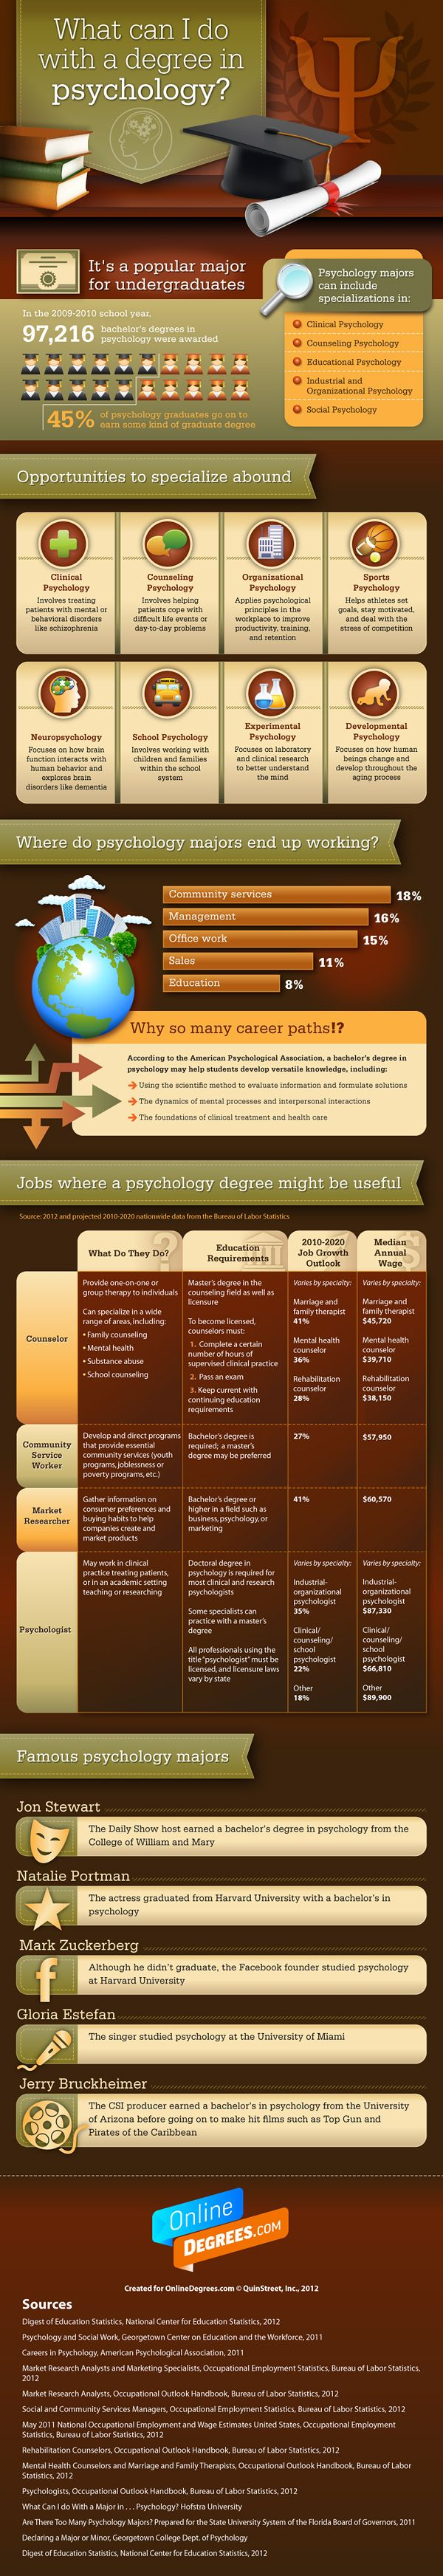 What do i need to do to get a Masters in Psycholoy?